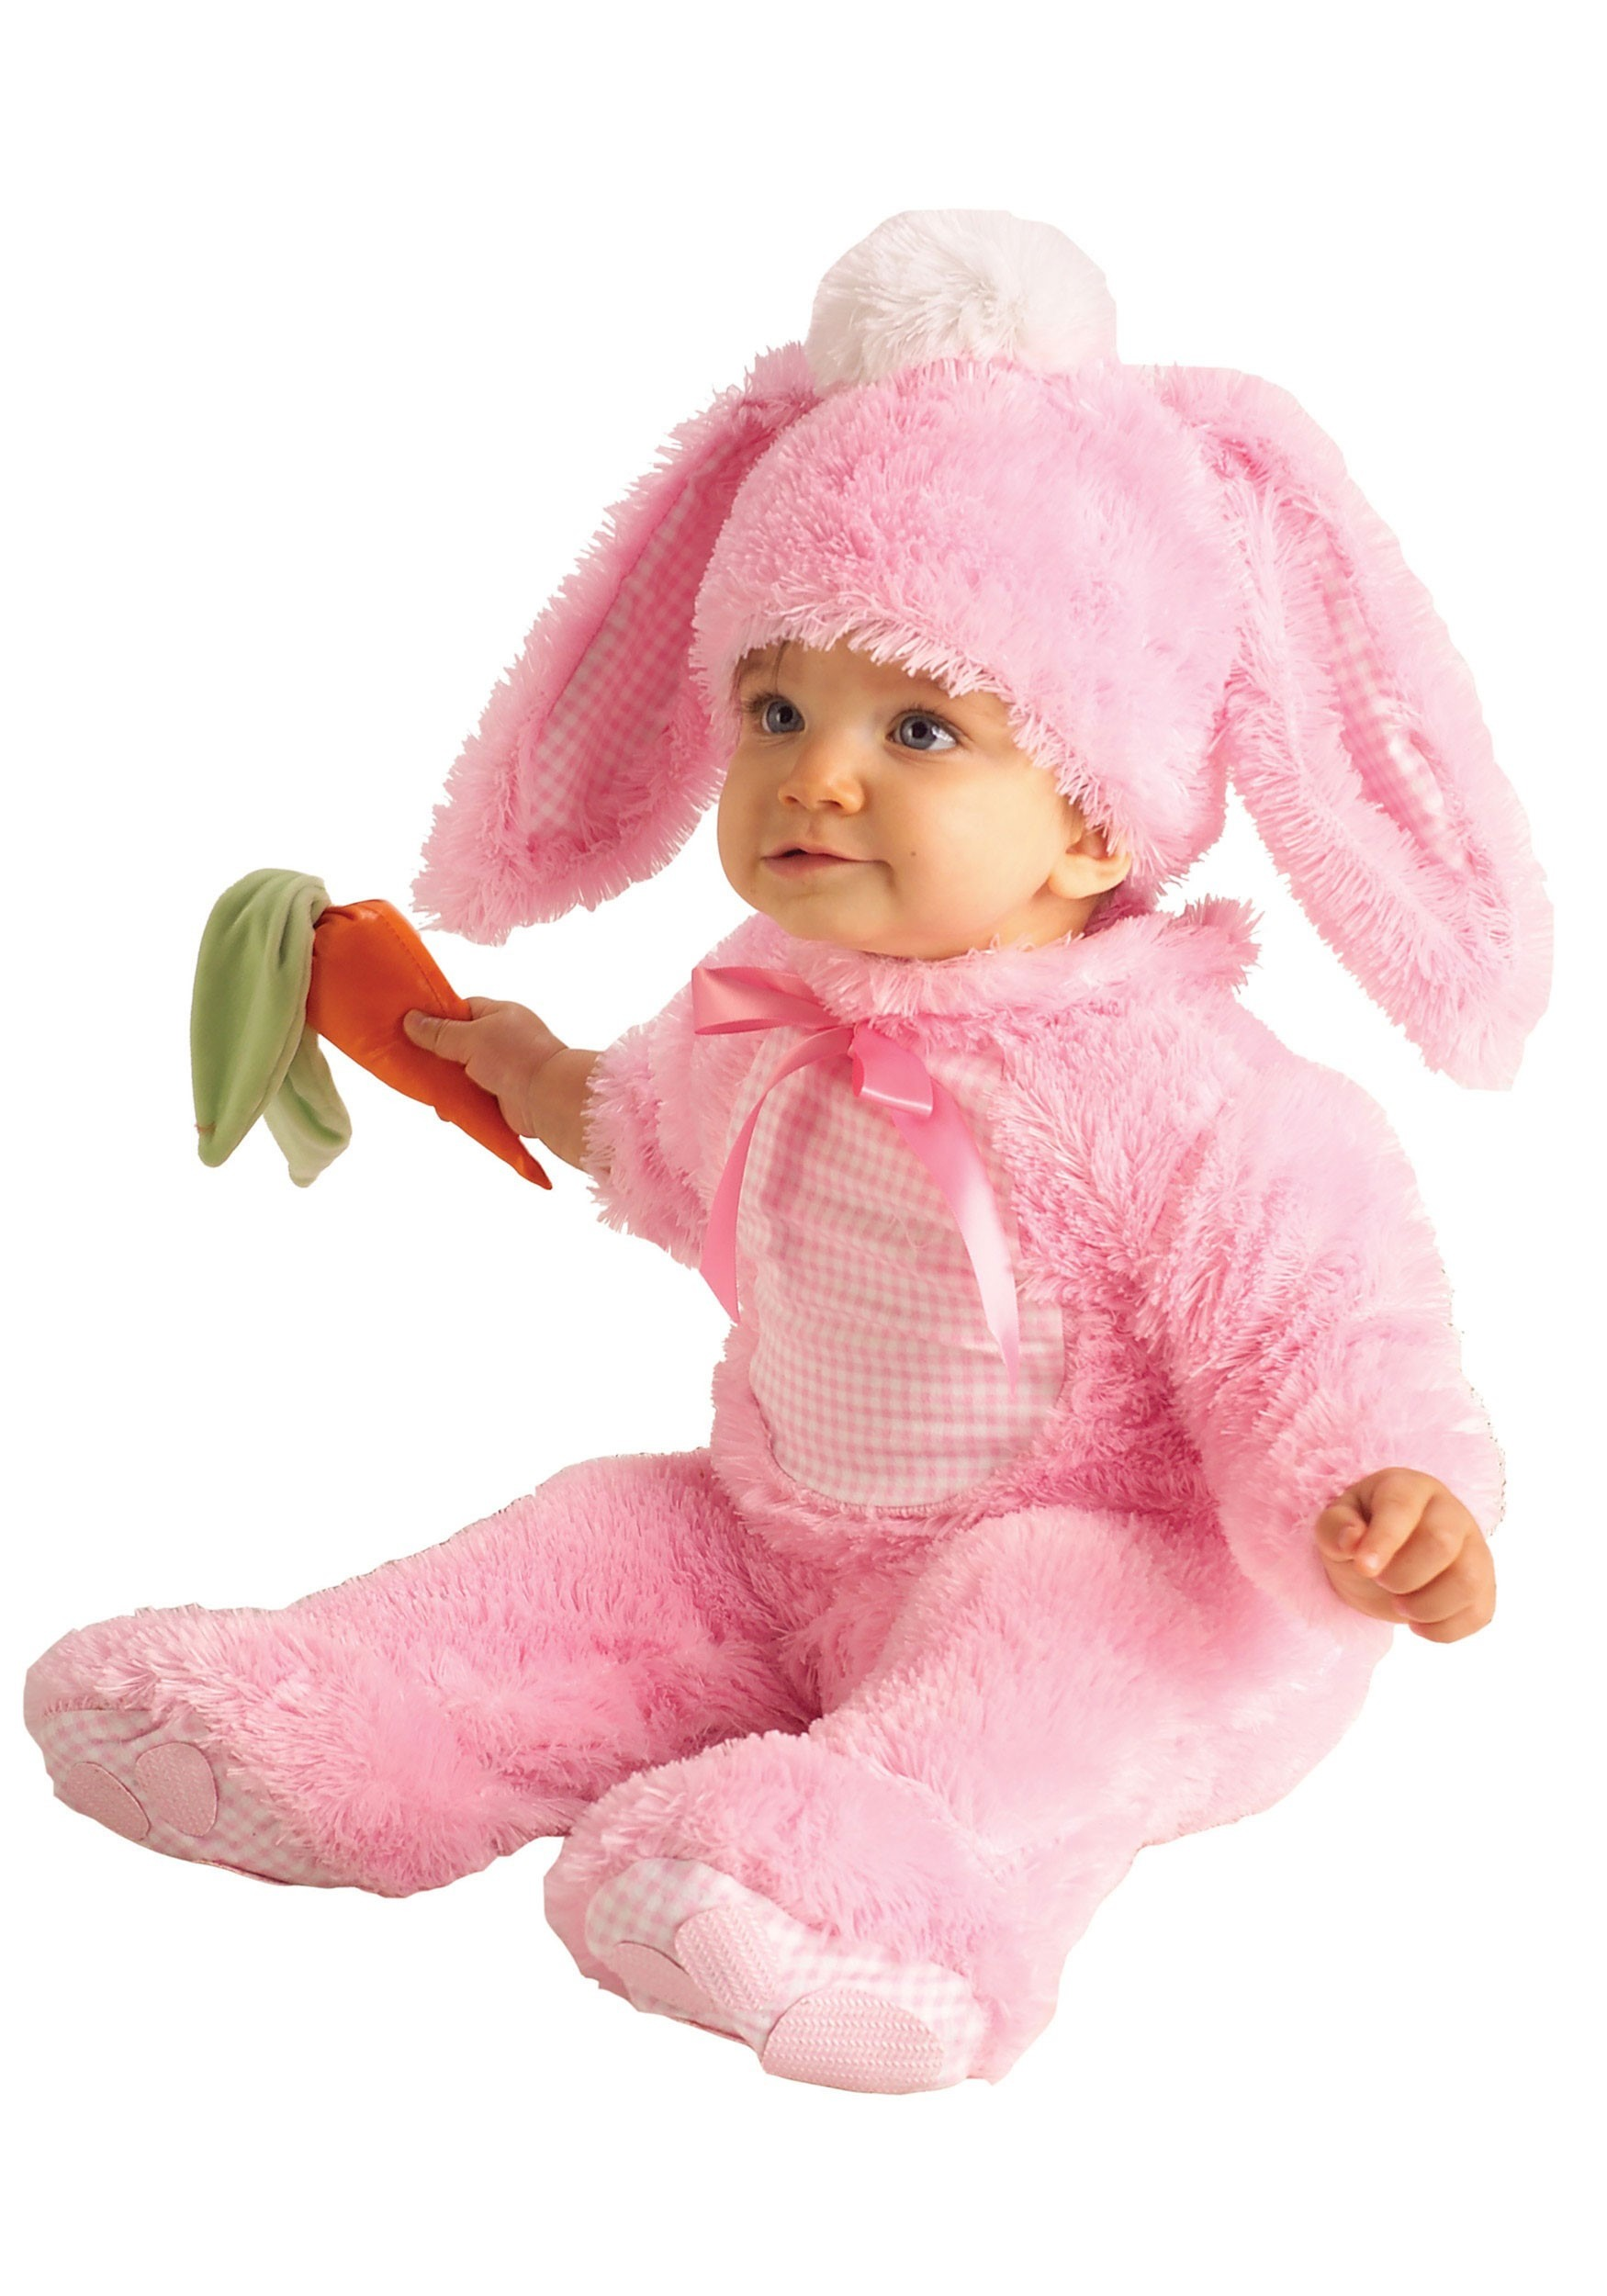 newborn & baby halloween costumes - baby costume ideas